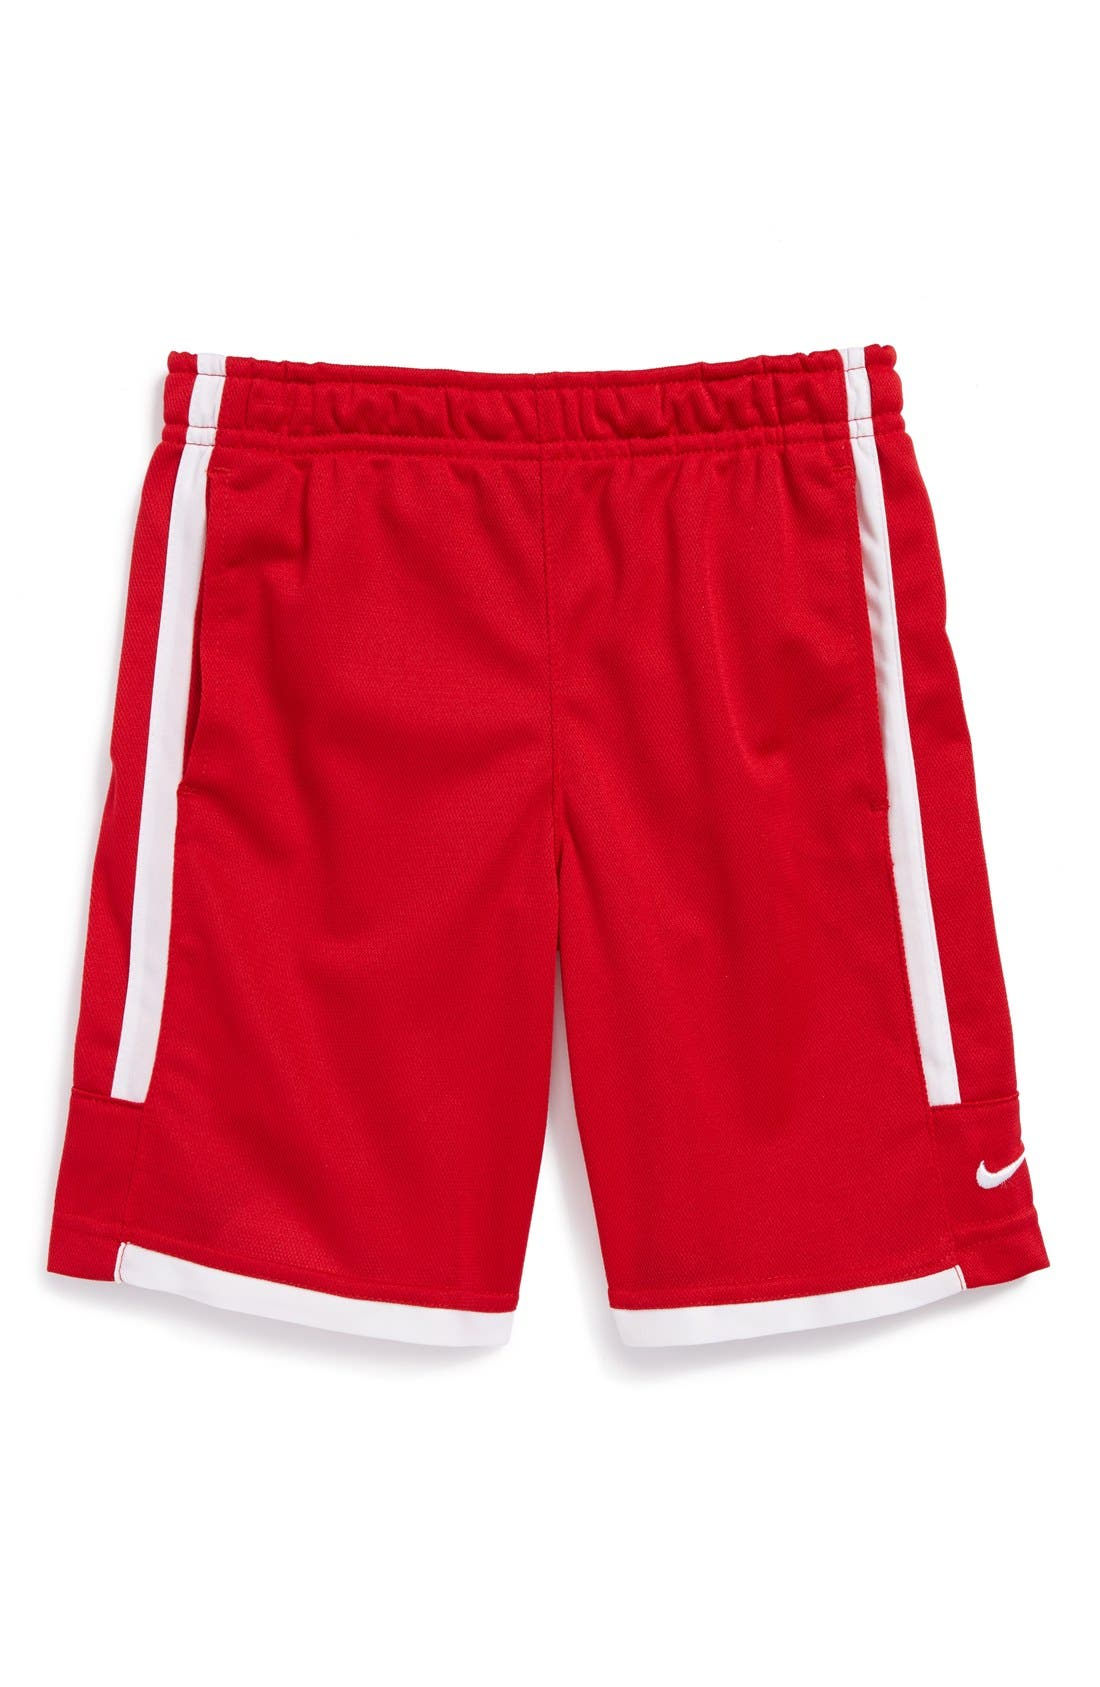 Alternate Image 1 Selected - Nike 'Double' Dri-FIT Shorts (Little Boys)